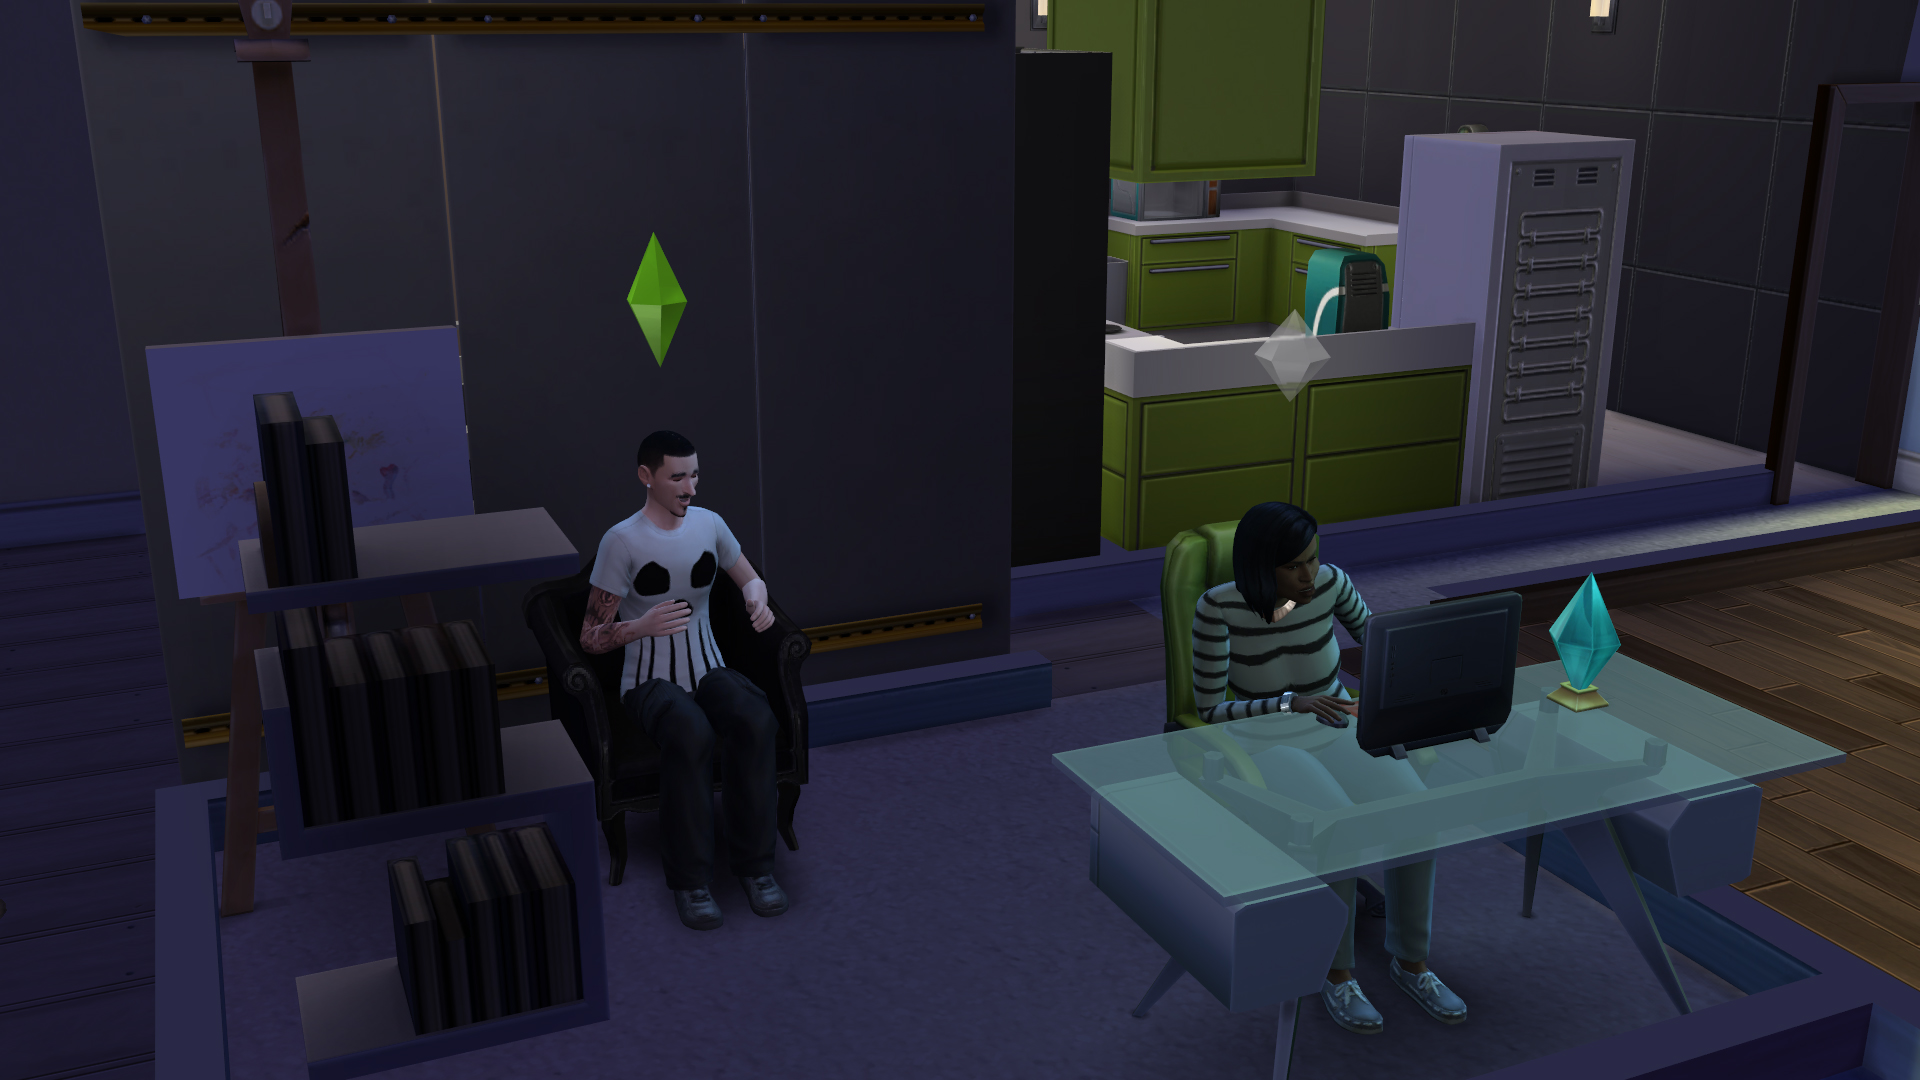 First Play The Sims 4 Review Ginnefine The Blog